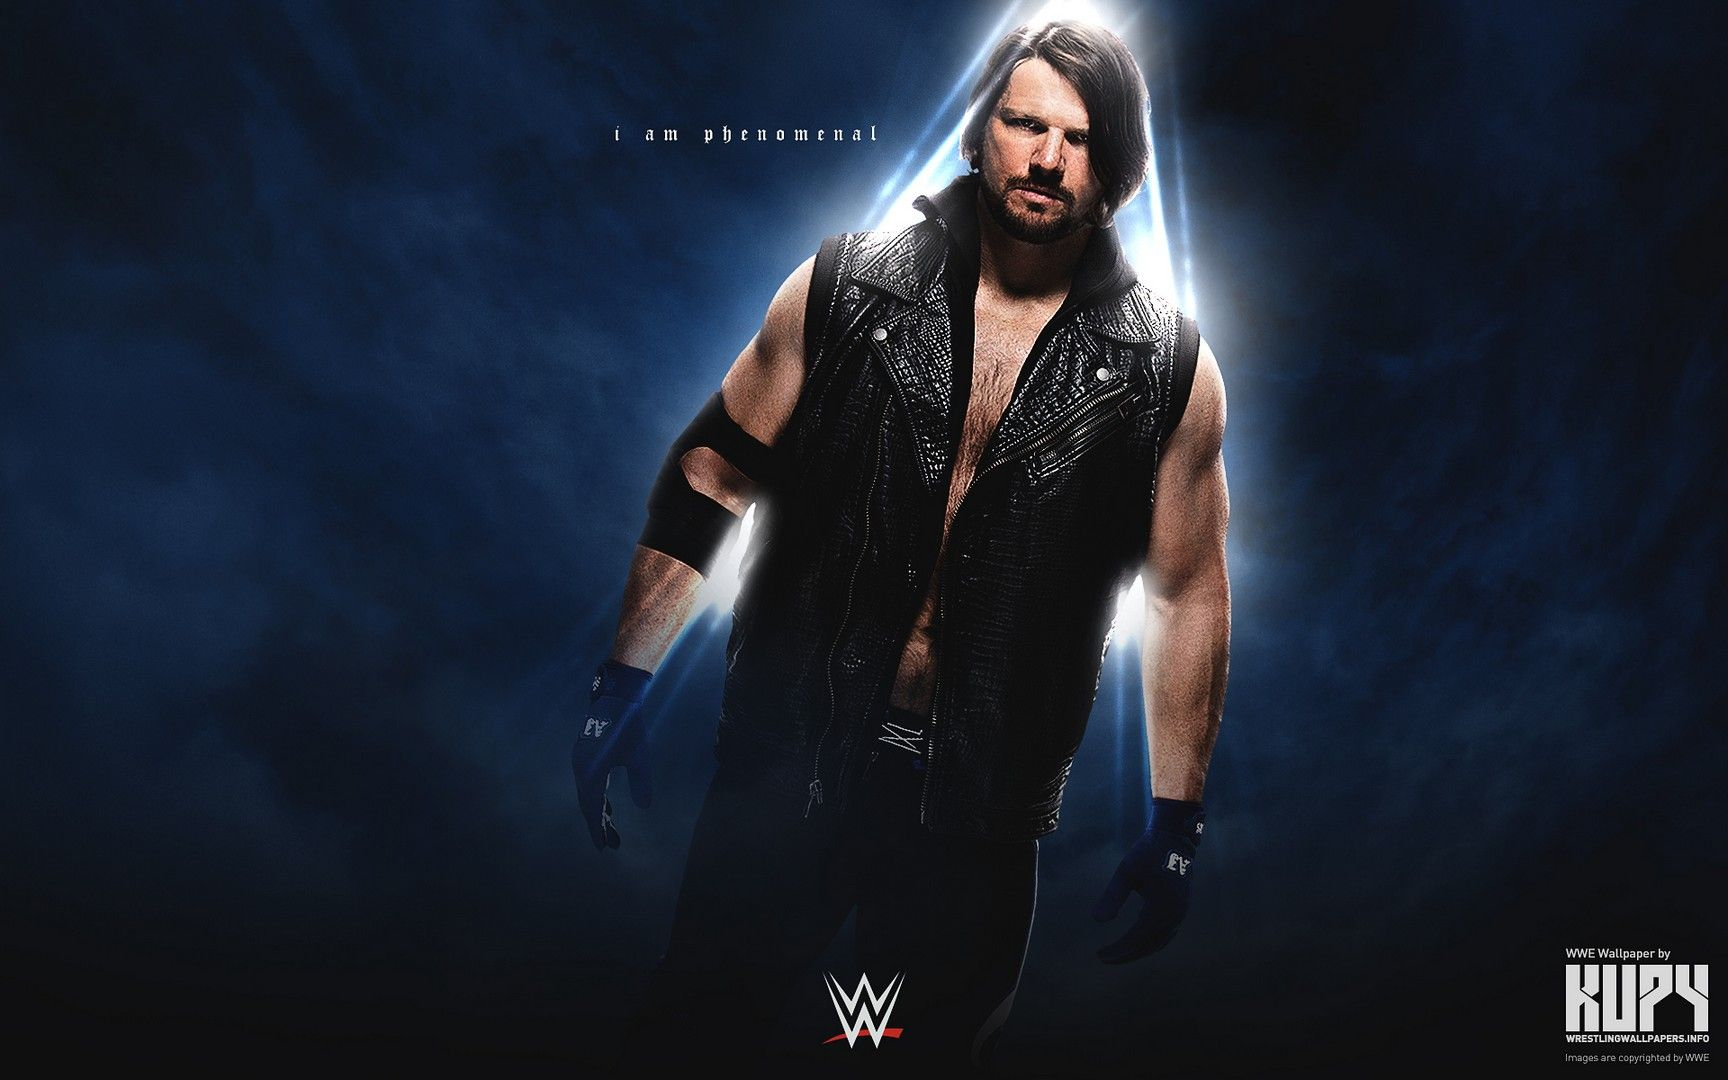 Aj Styles Wallpaper Wwe Wallpaper Aj Styles Wwe Wwe Wallpapers